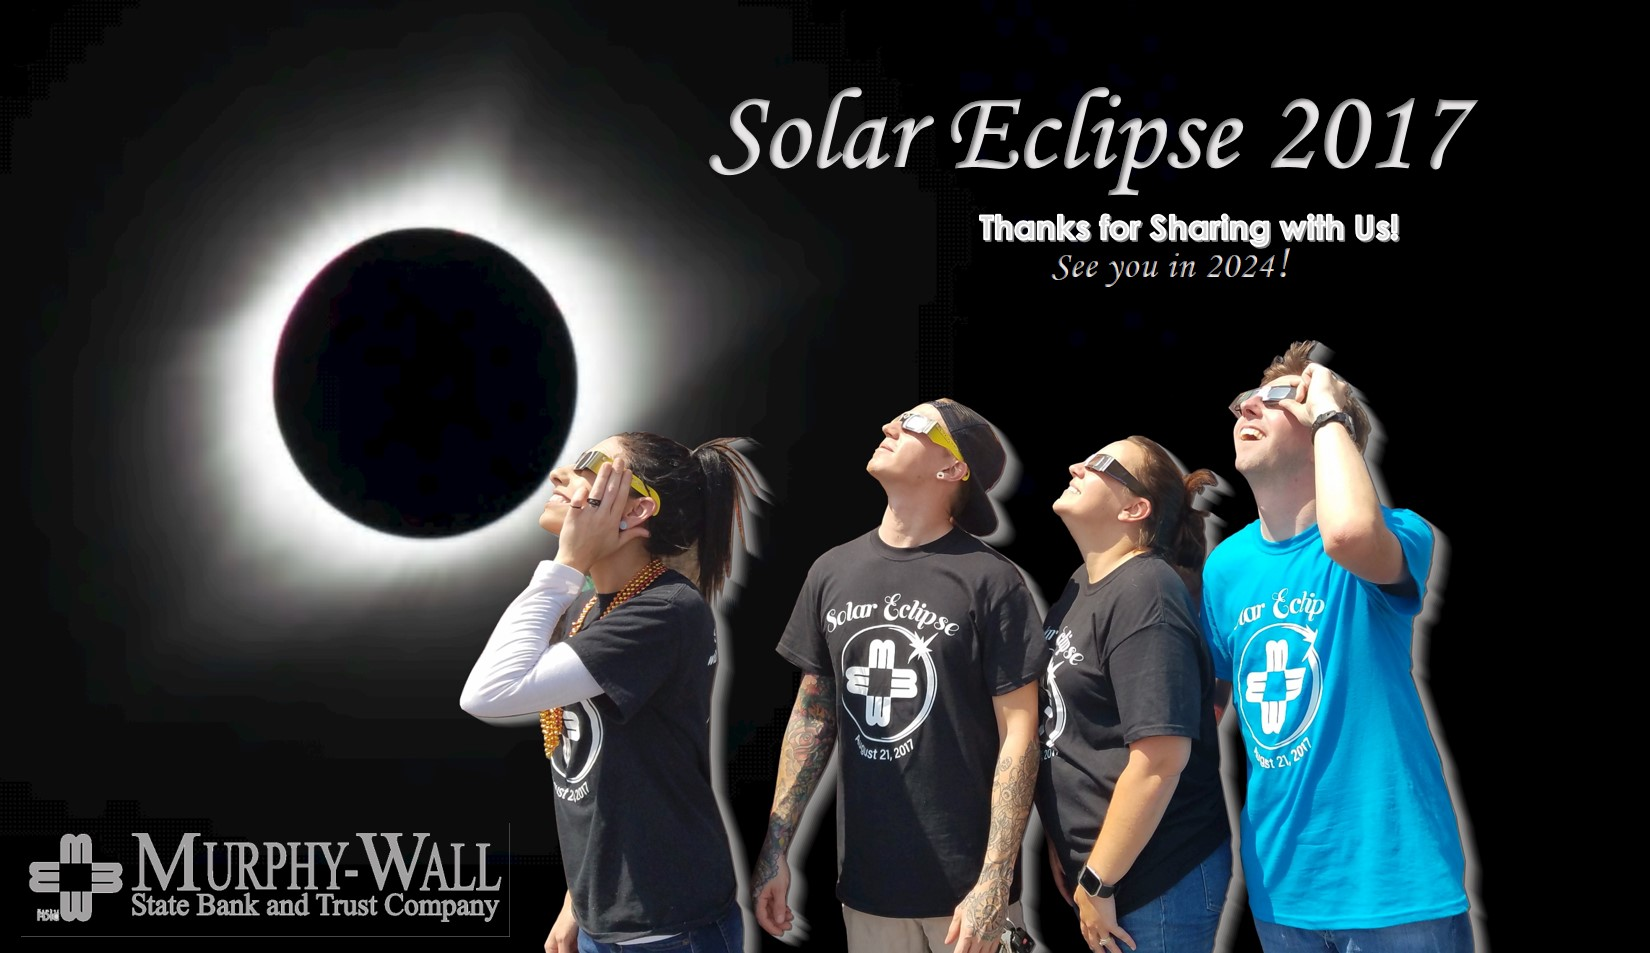 Thank You for sharing the solar eclipse with us!